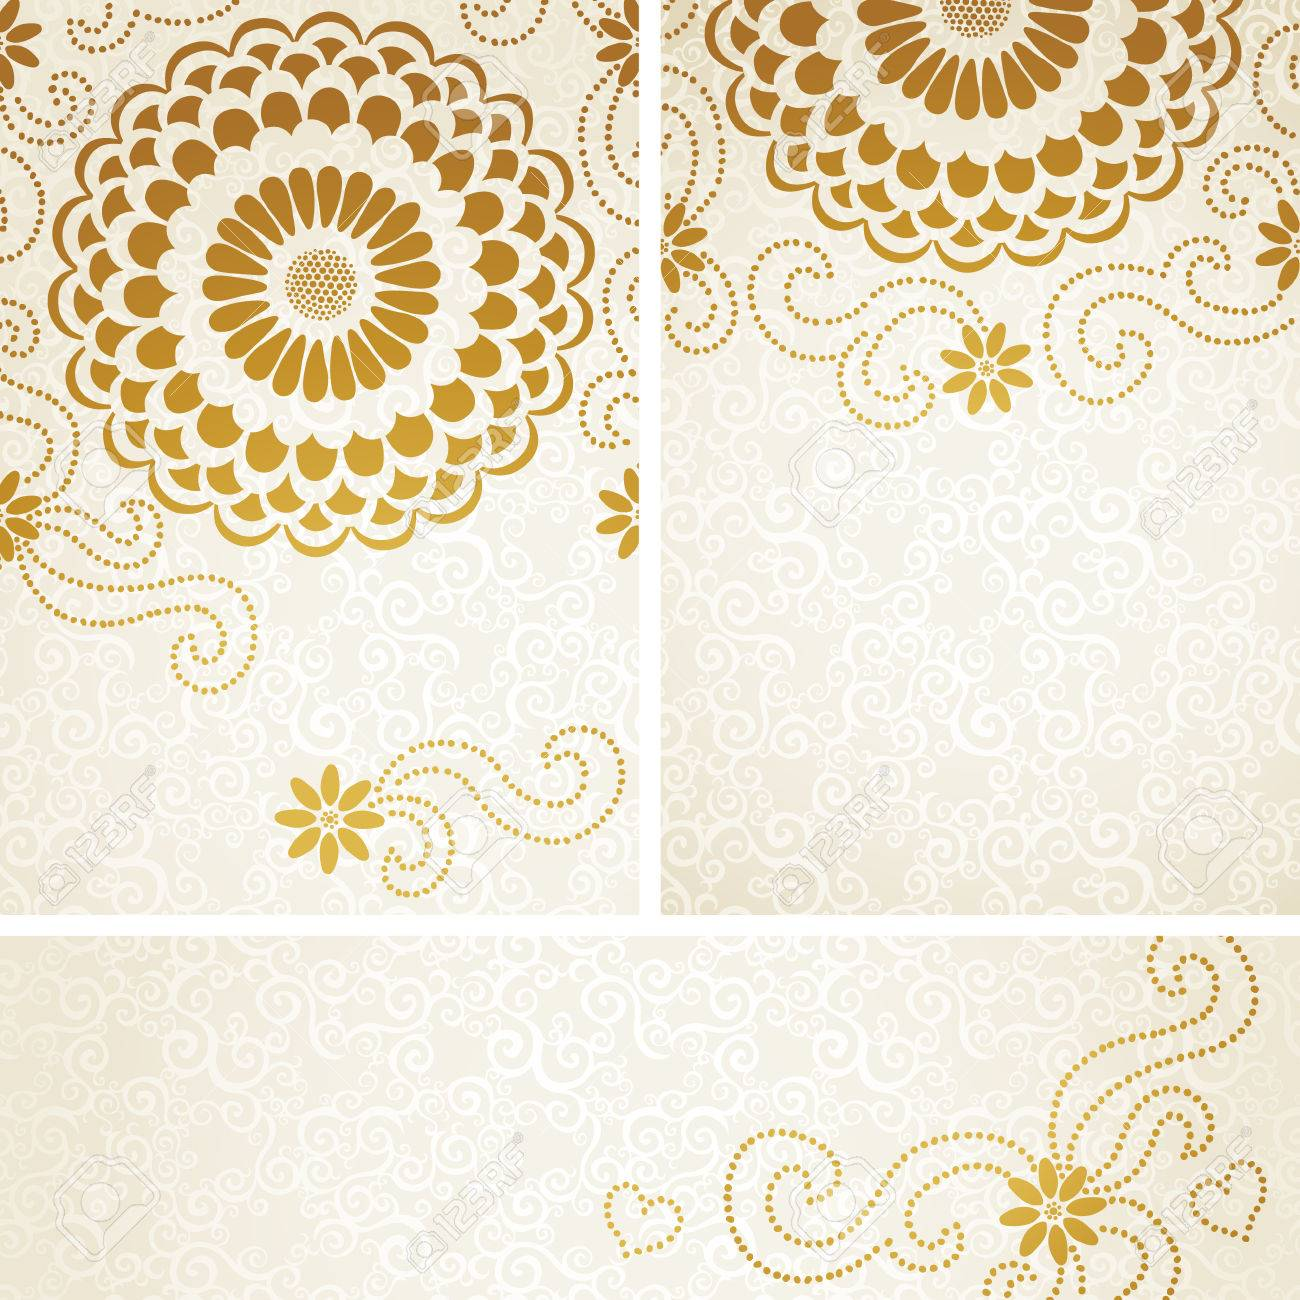 Vintage Invitation Cards With Large Flowers And Curls Template